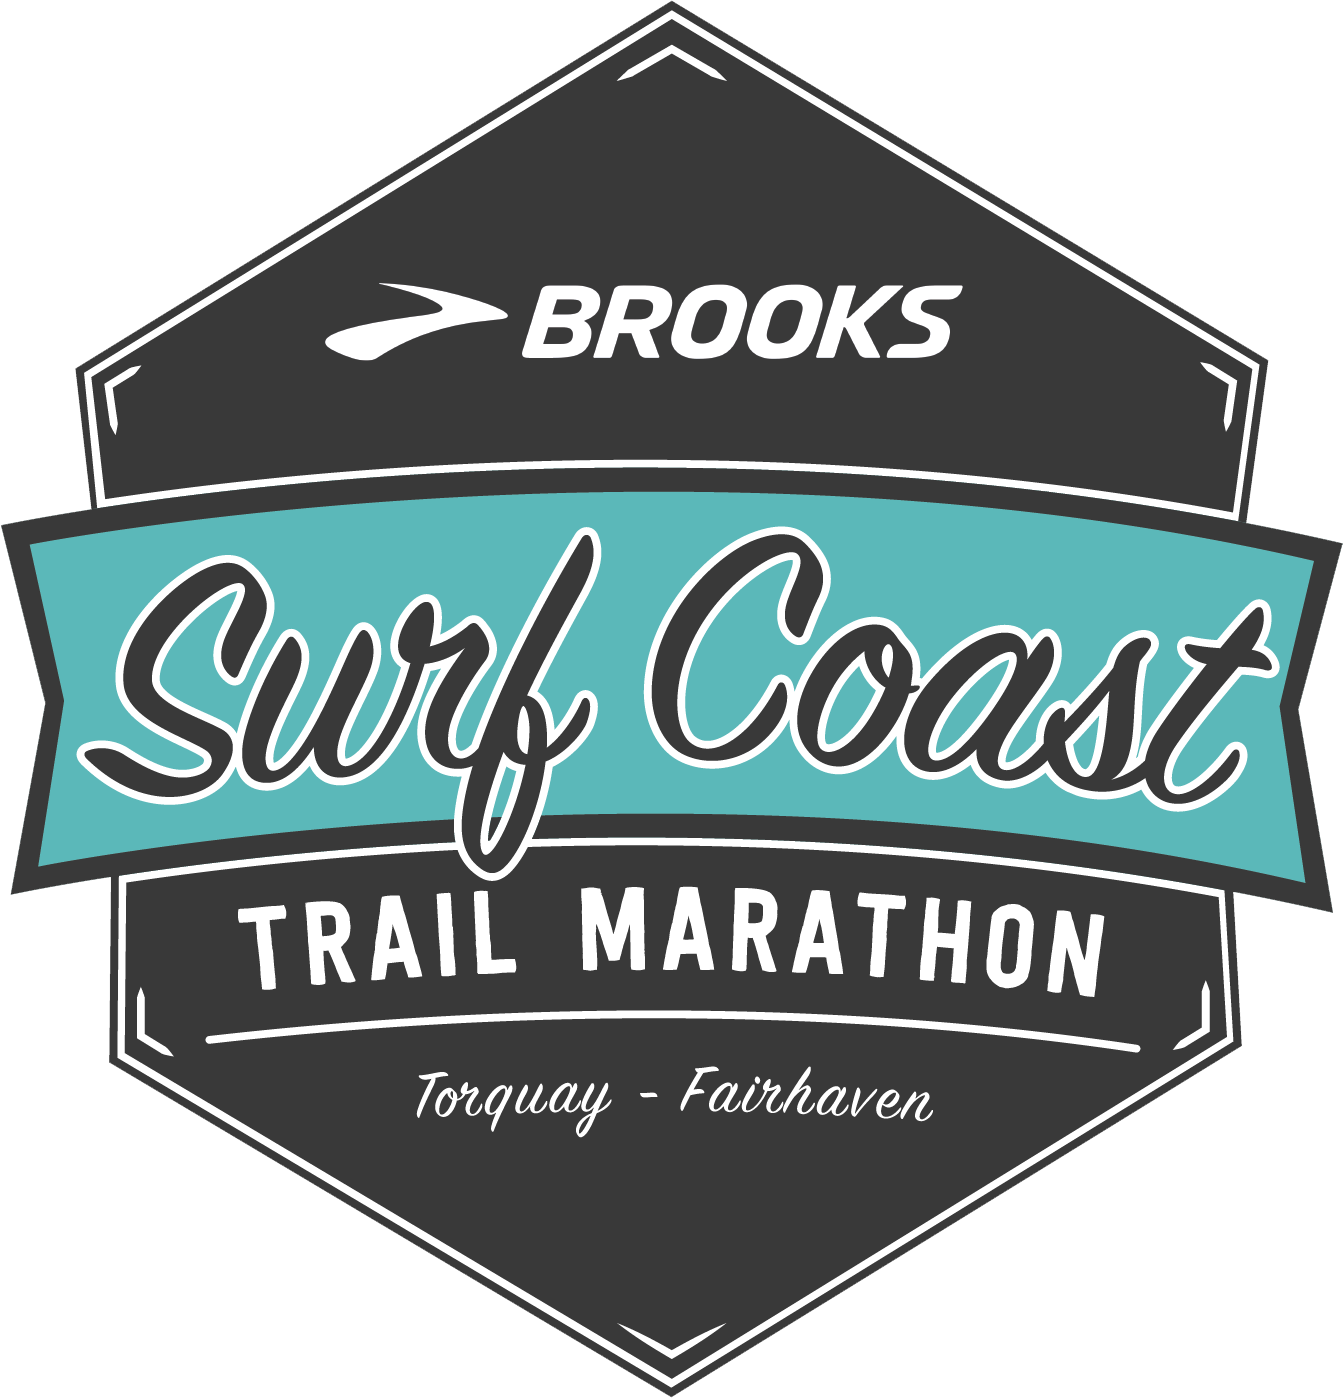 Brooks Surf Coast Trail Marathon